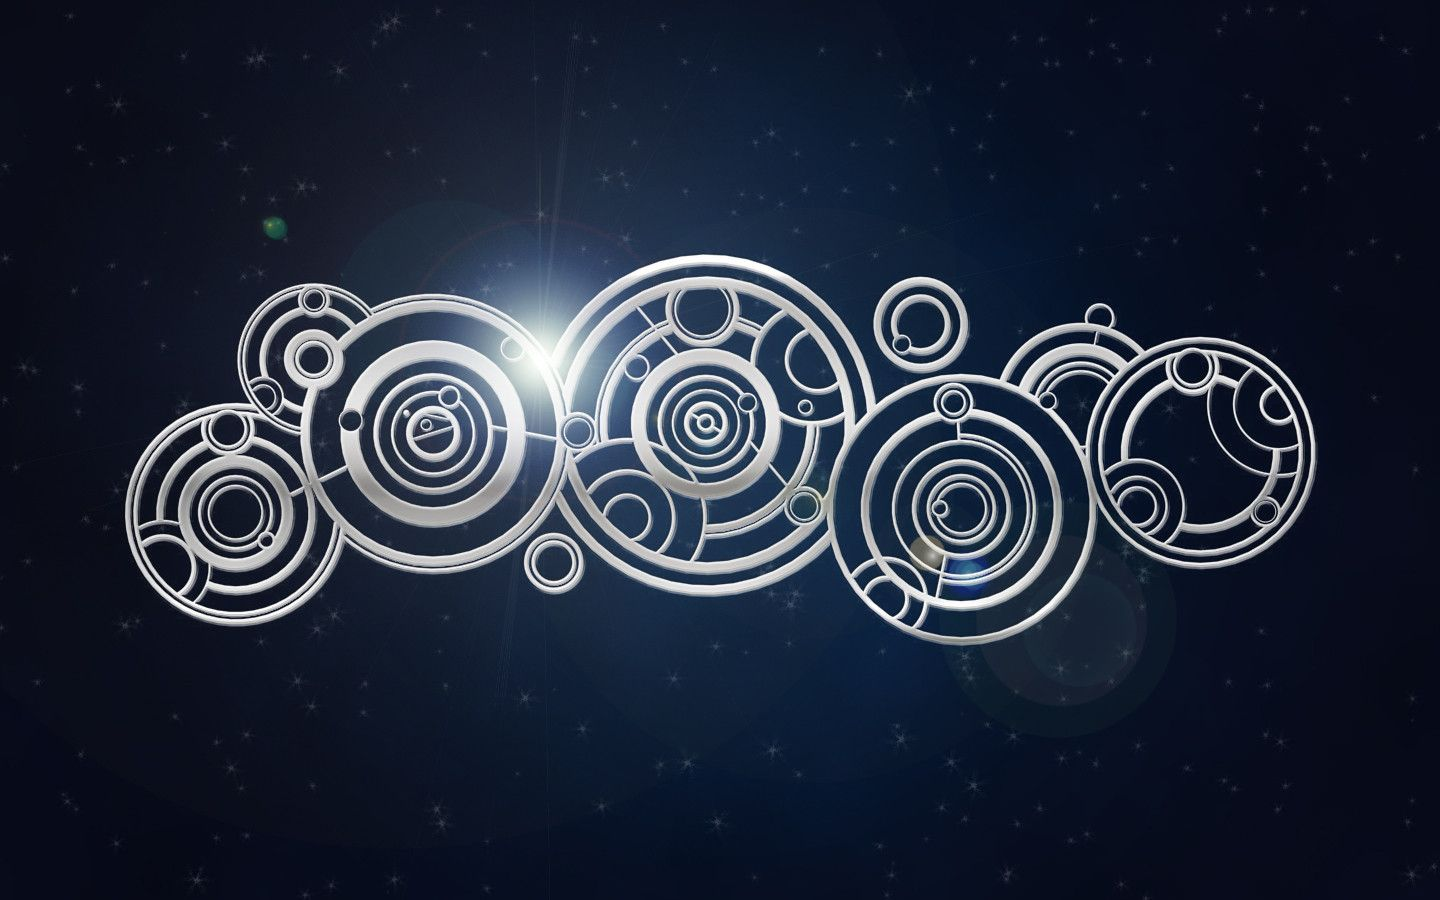 gallifreyan symbols wallpaper - photo #15